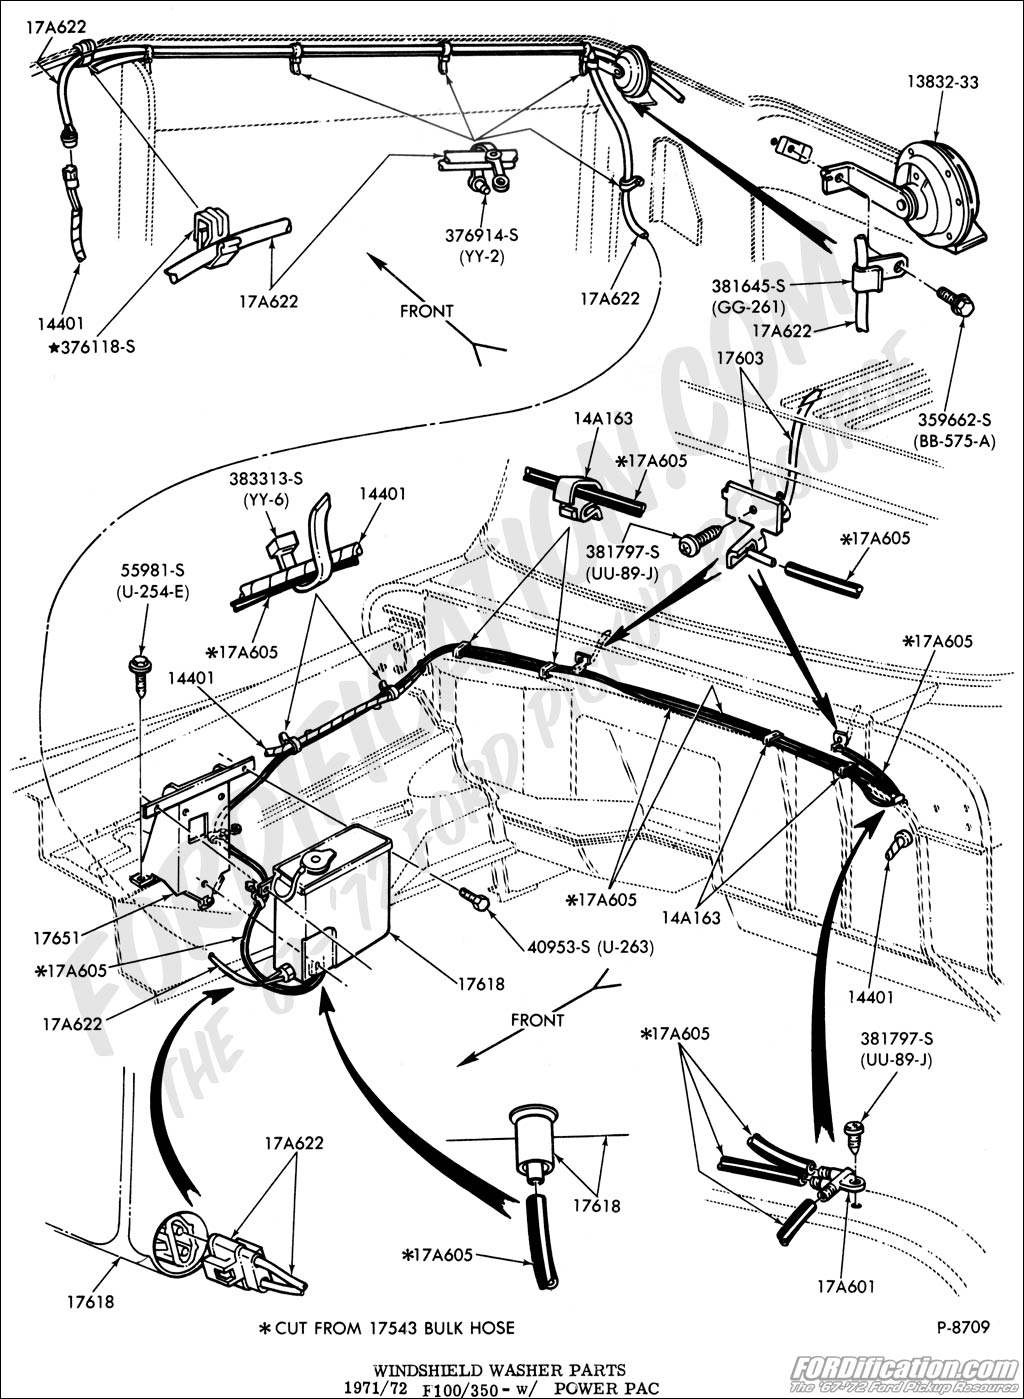 Ford Truck Drawing At Free For Personal Use 02 Mazda Protege 1 8l Engine Diagram 1024x1399 Technical Drawings And Schematics